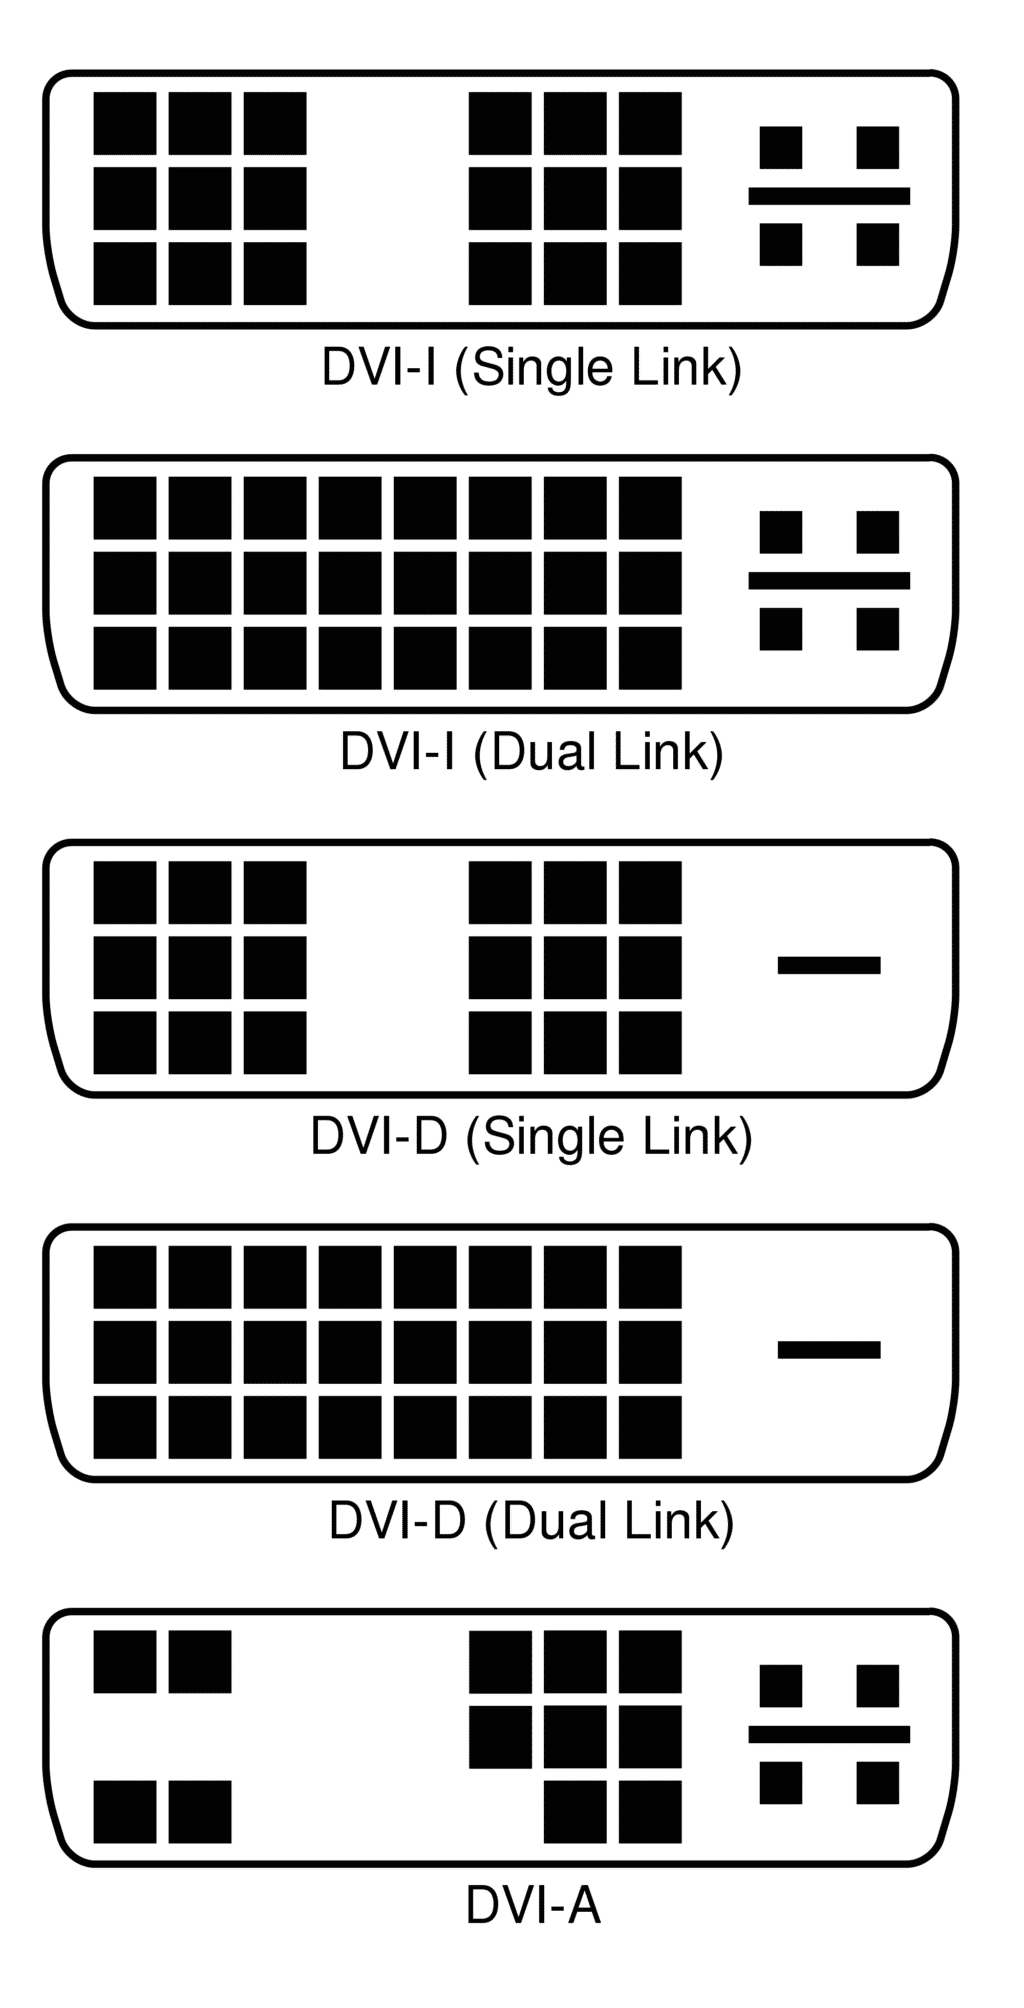 DisplayPort vs HDMI vs USB-C vs DVI vs VGA